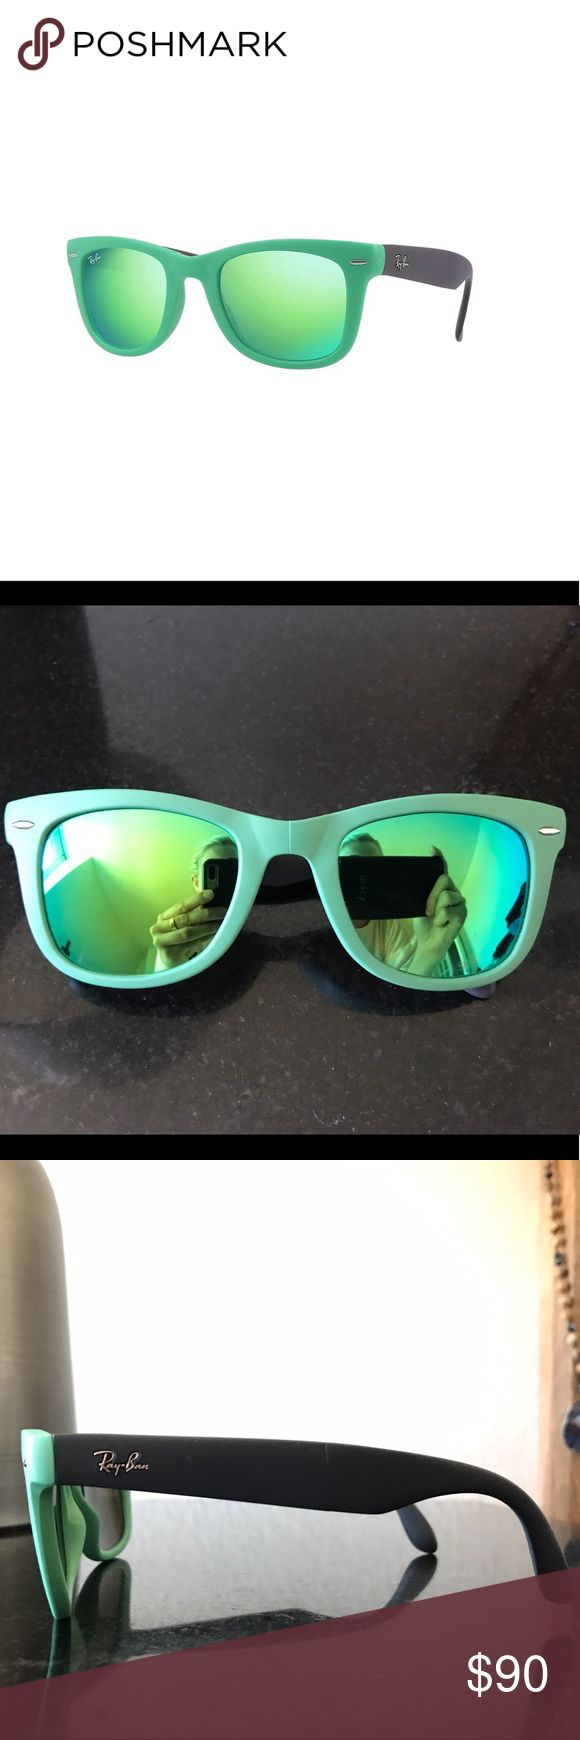 Ray-Ban Wayfarer Green Folding Flash Lenses Green, non-polarized folding wayfarer flash lenses, case included, *small crack on right nosepiece (fourth photo)* Ray-Ban Accessories Sunglasses